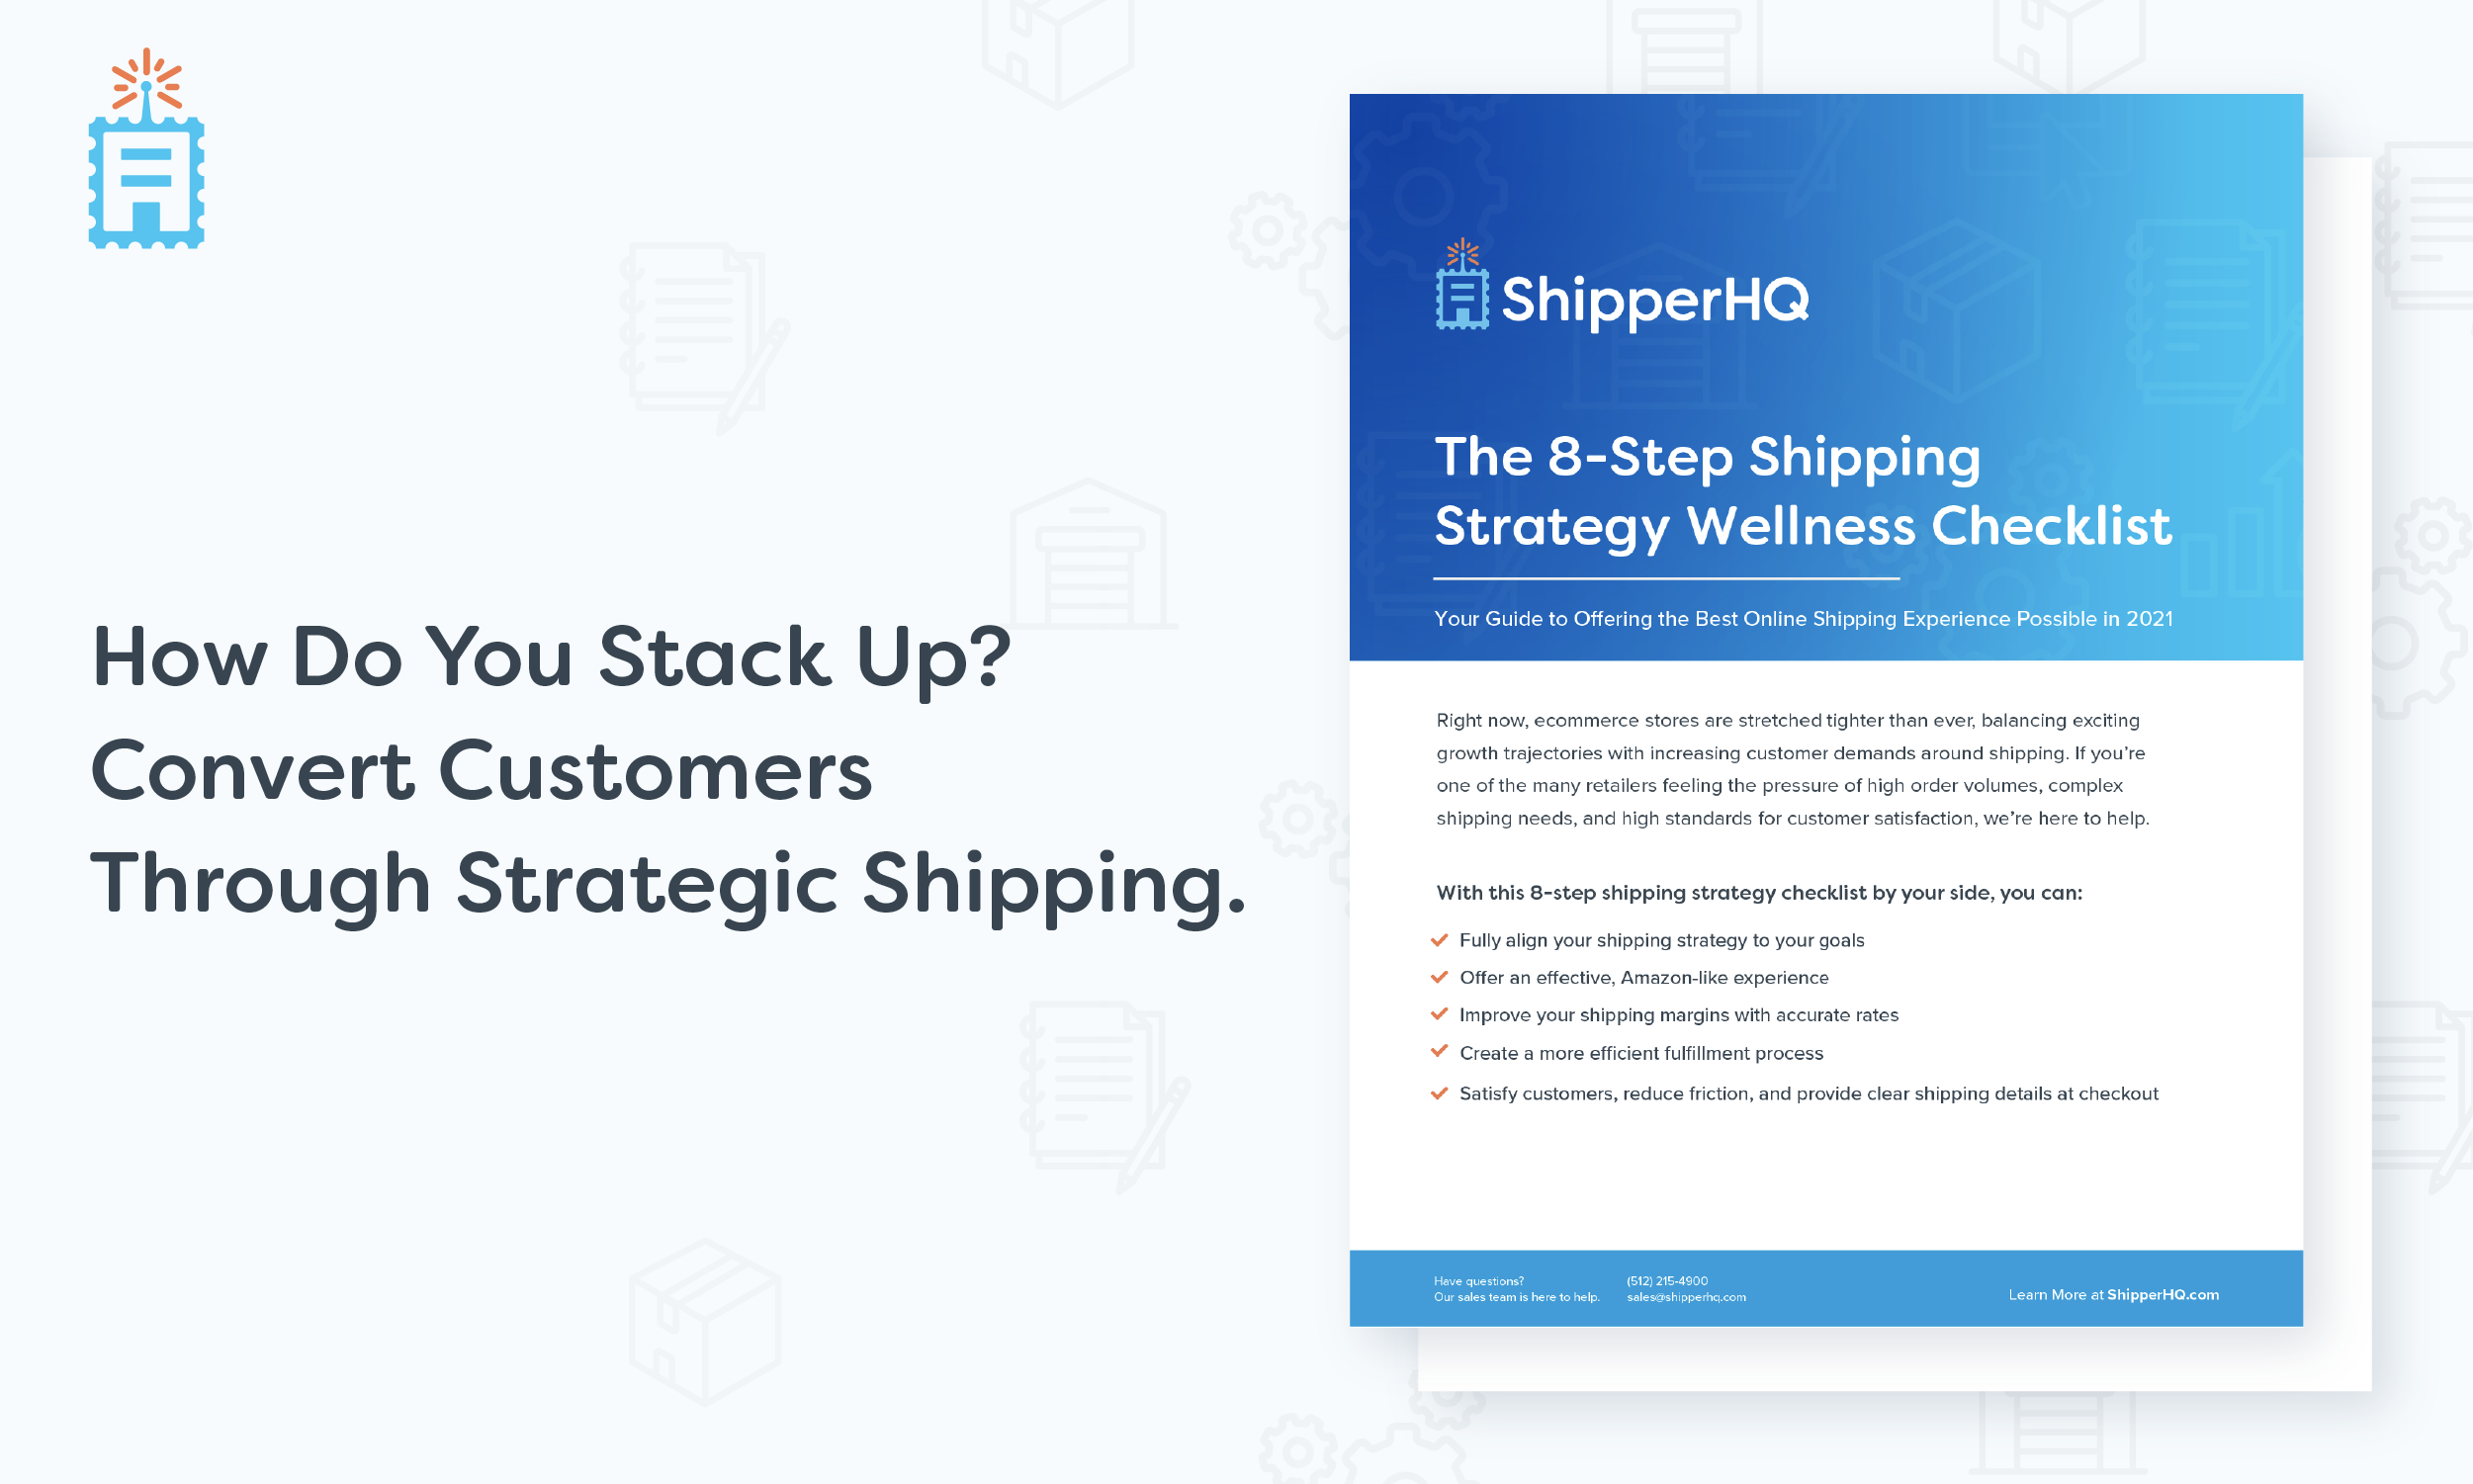 shipping strategy checklist pdf image